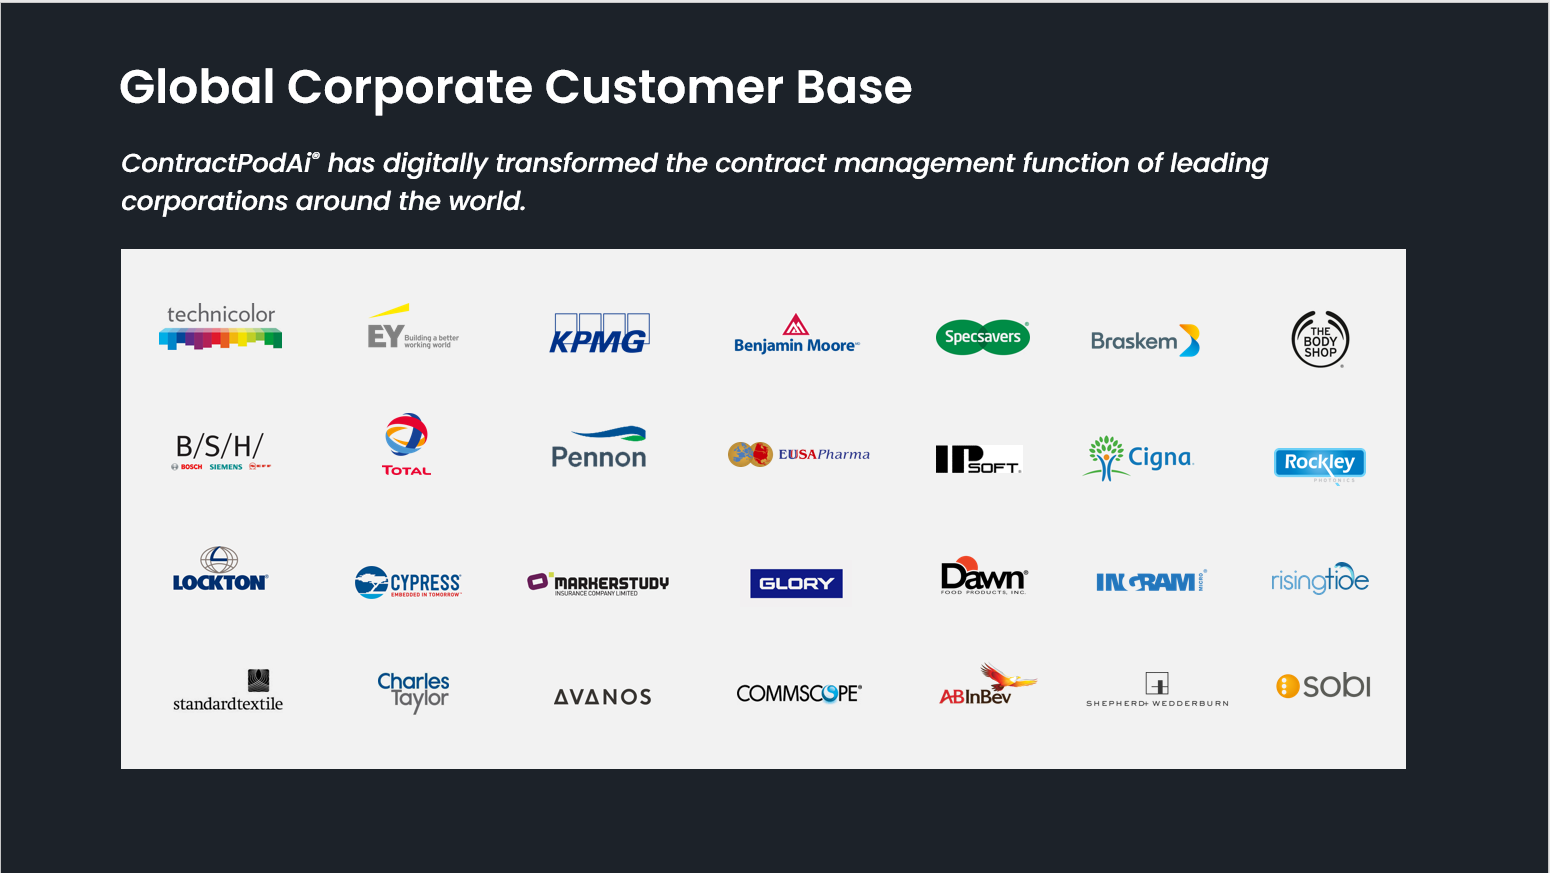 ContractPodAi has digitally transformed the contract management function of leading corporations around the world